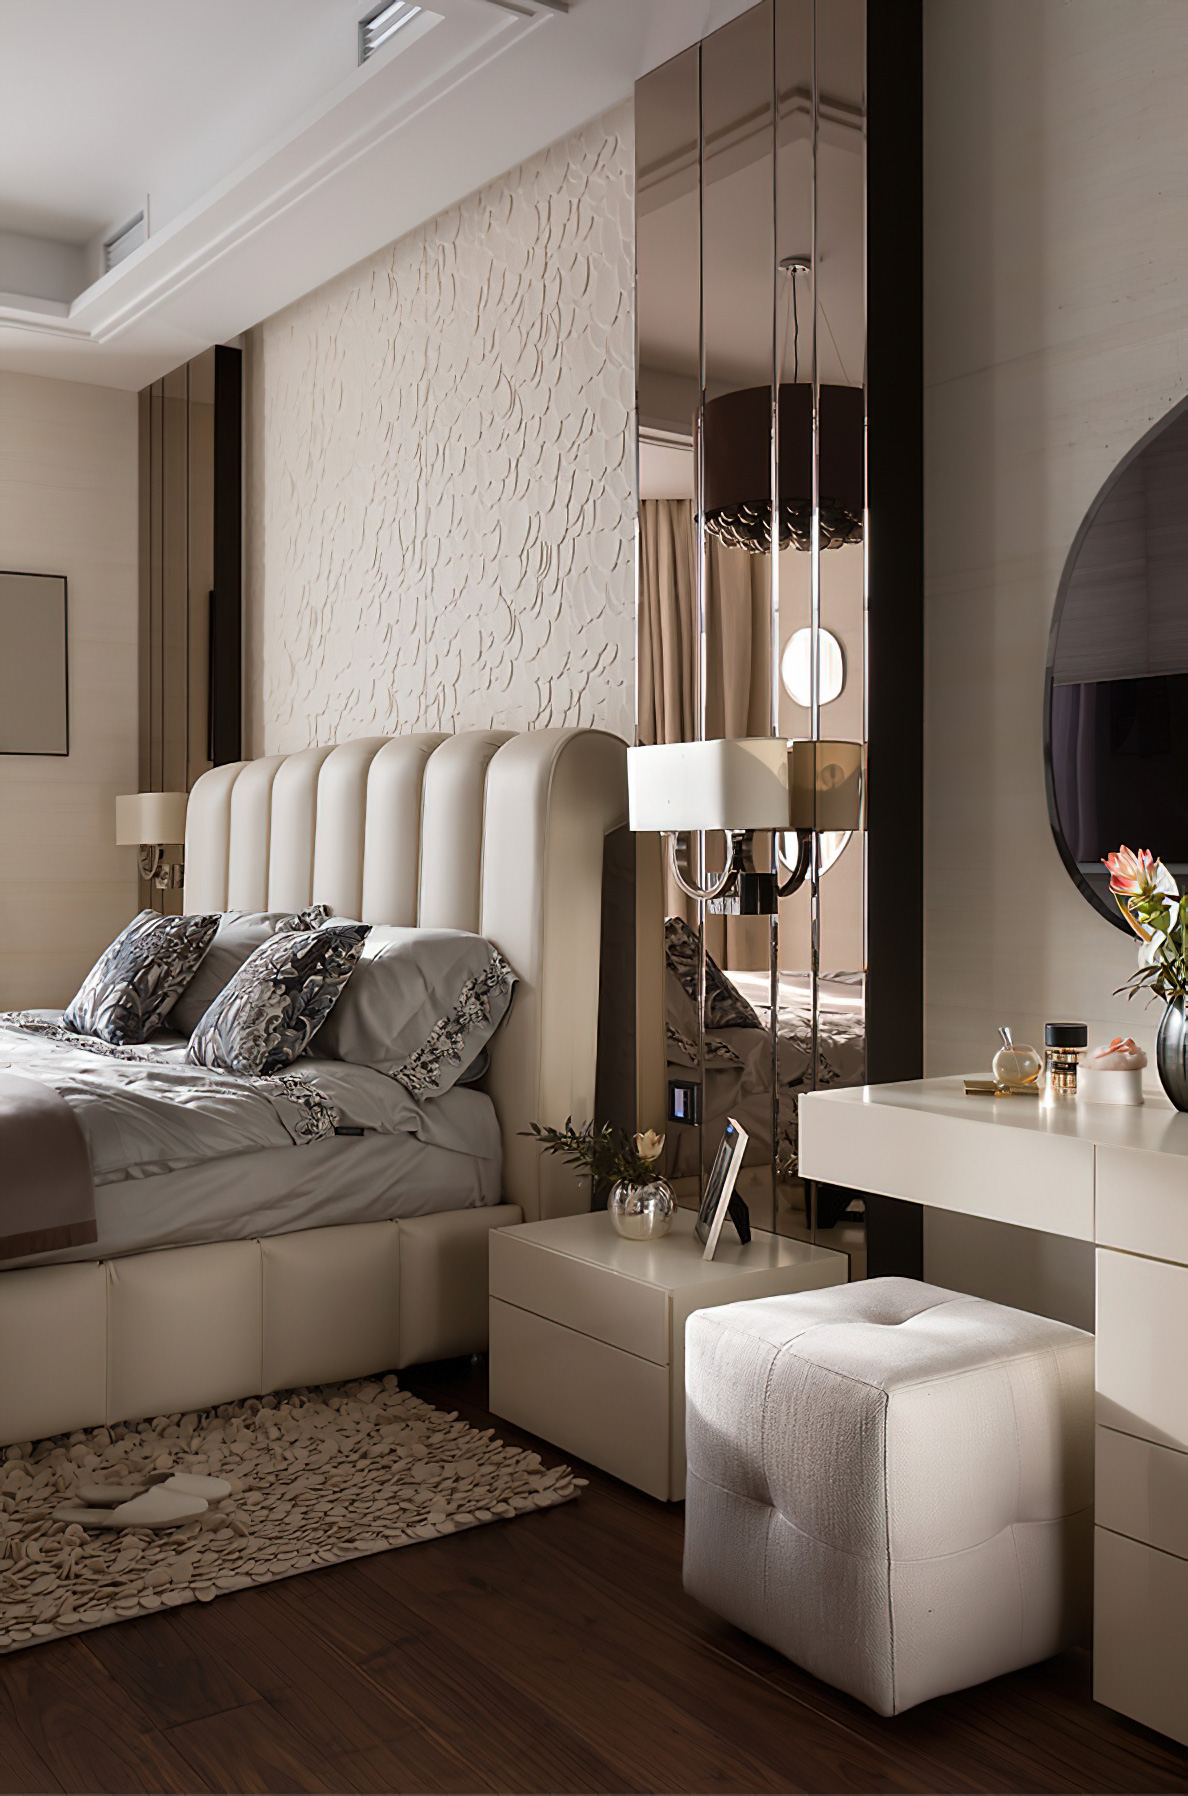 Pecher SKY Apartment Interior Design Kiev, Ukraine - Nataly Bolshakova